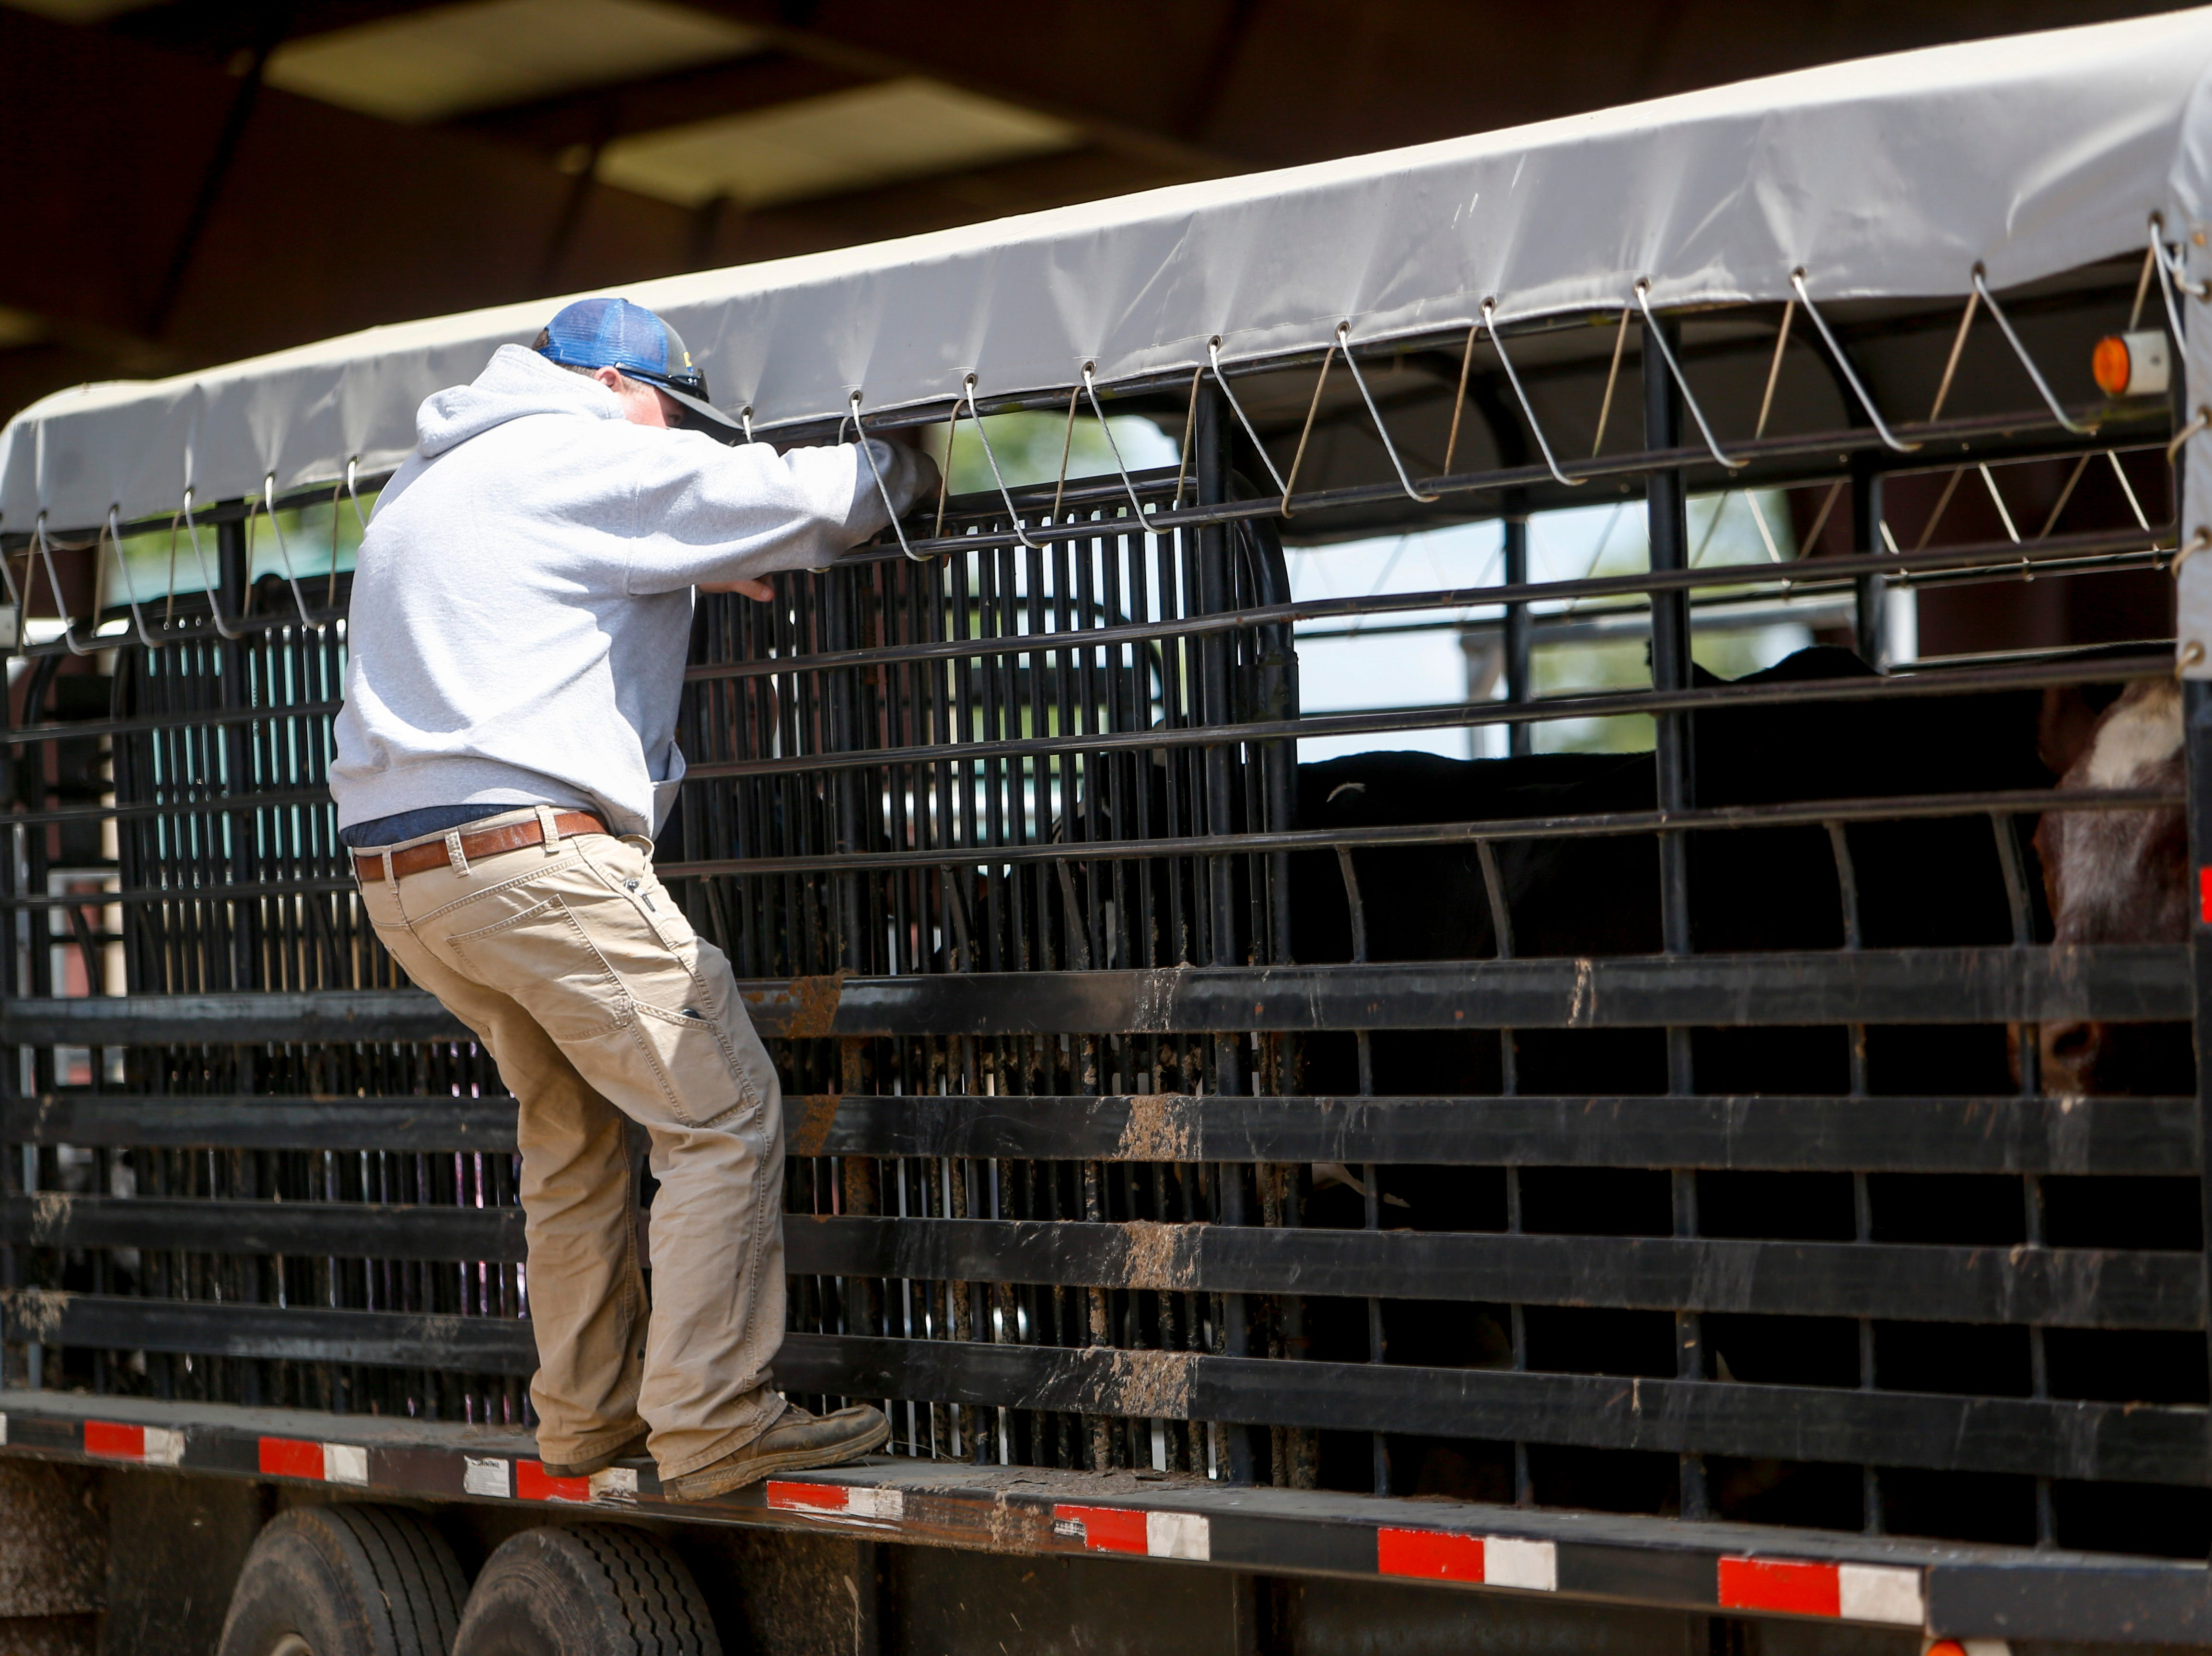 A farmhand gets up to adjust location of steer in their trailer at the 69th annual Clarksville Area Junior Better Beef Show at the John Bartee Agricultural Center in Clarksville, Tenn., on Tuesday, May 14, 2019.